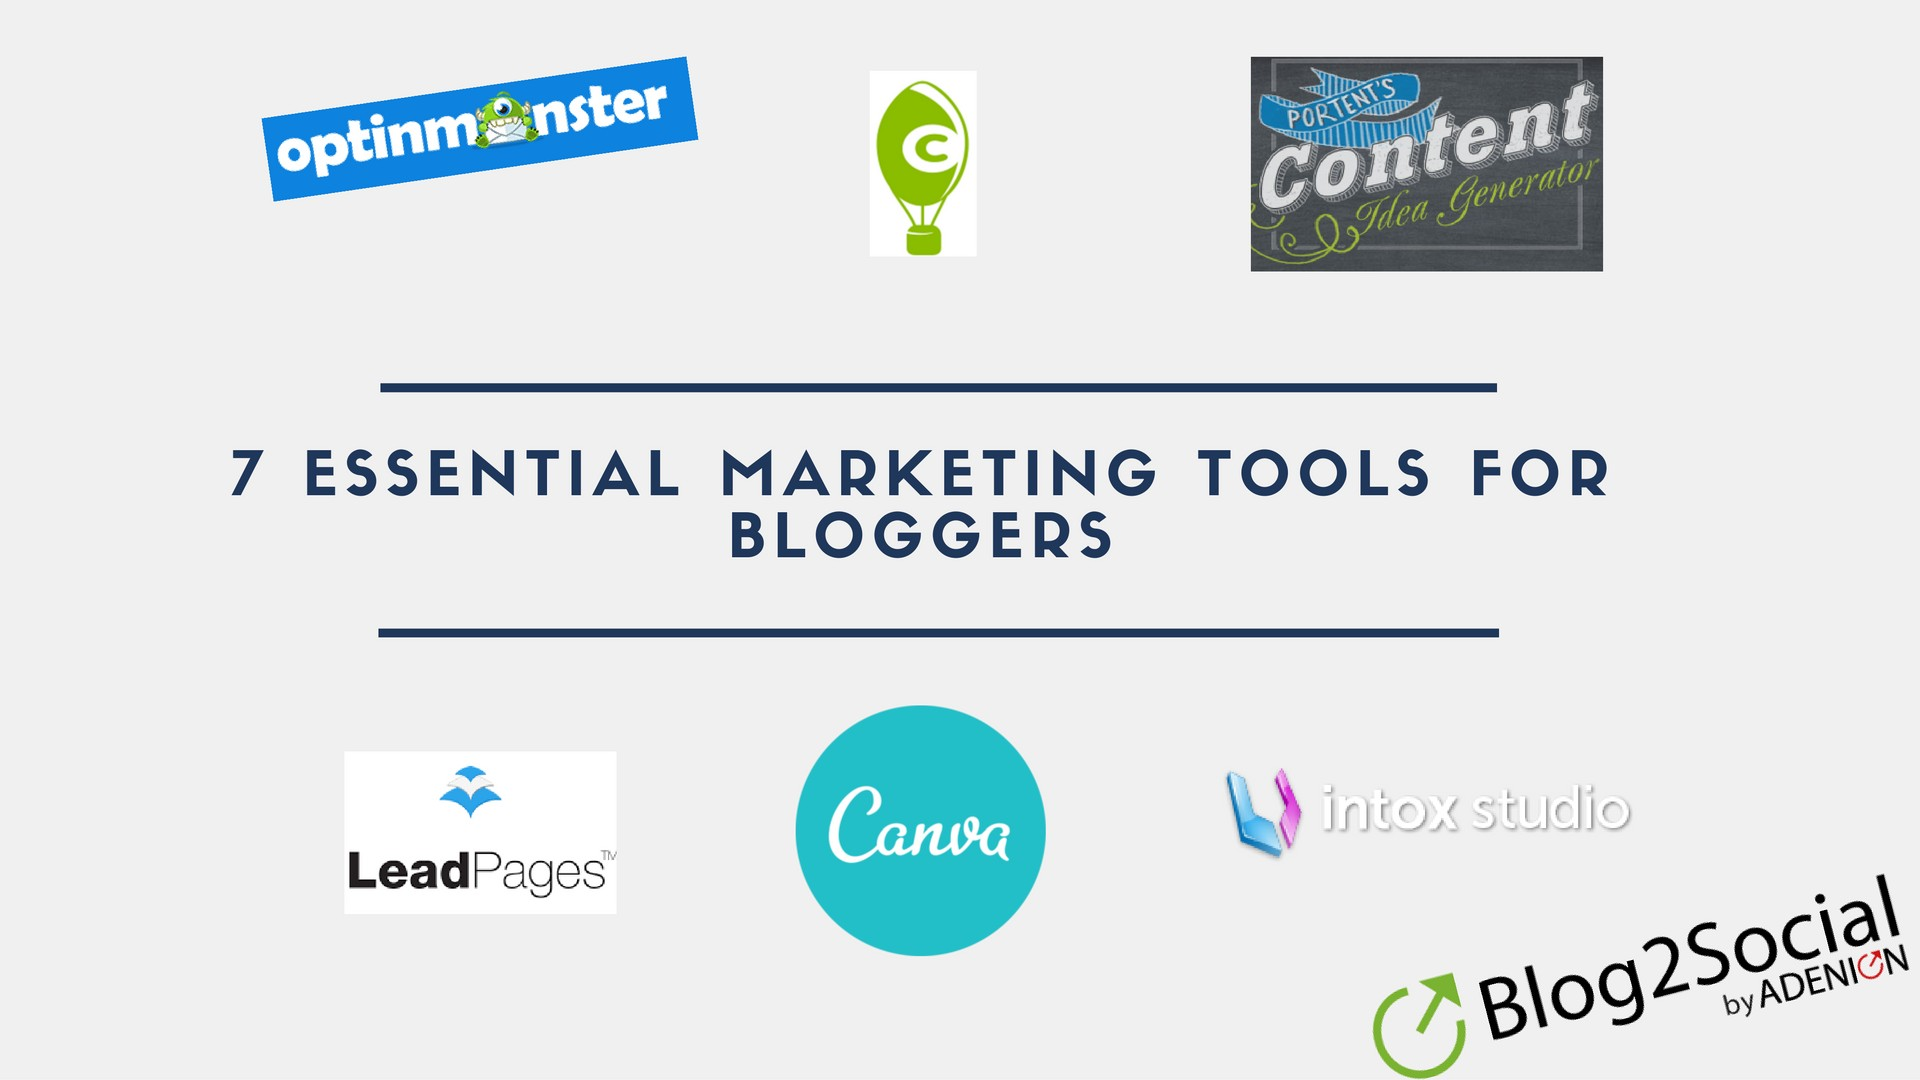 7 Essential Marketing Tools For Bloggers